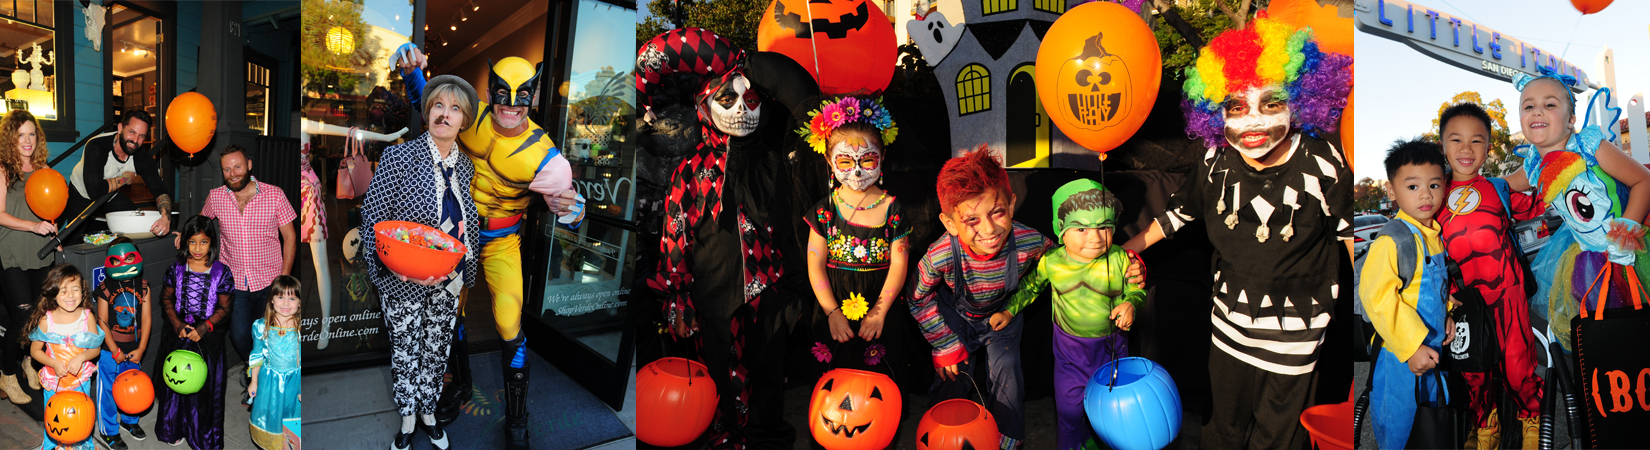 trick or treat on india street events little italy san diego